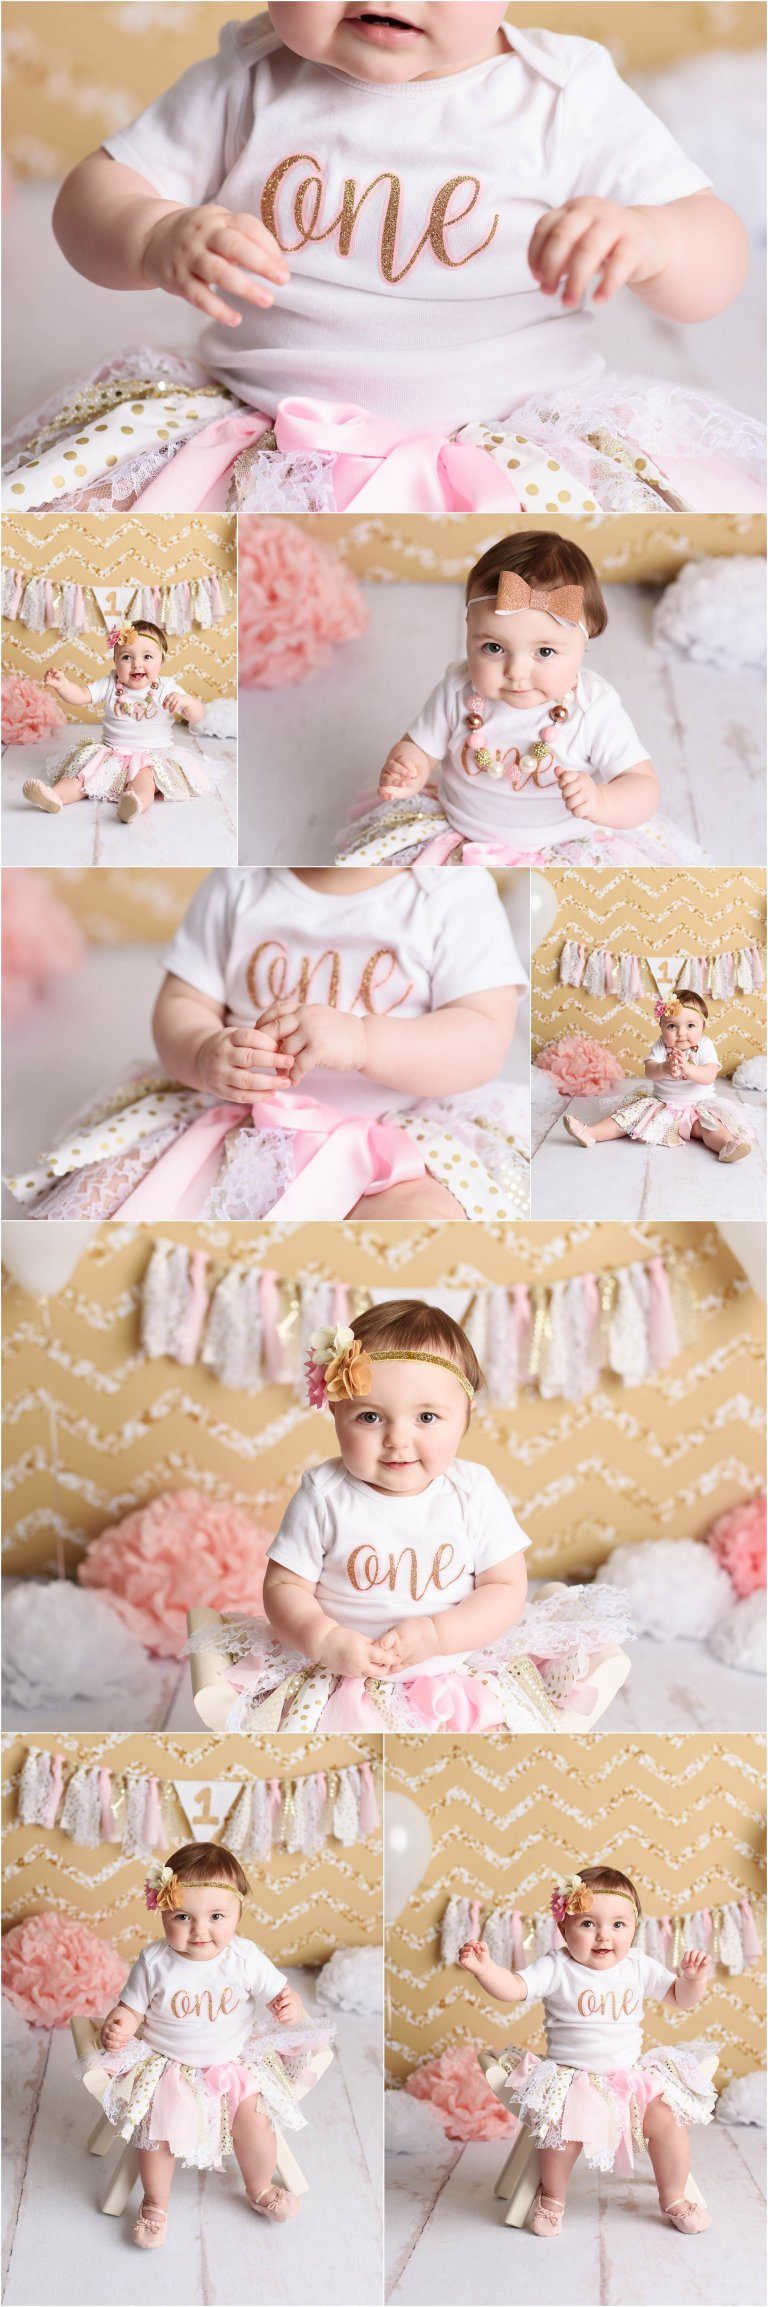 Girl first birthday photos in gold and pink tutu with glitter by Moscow PA photographer Crystal Satriano